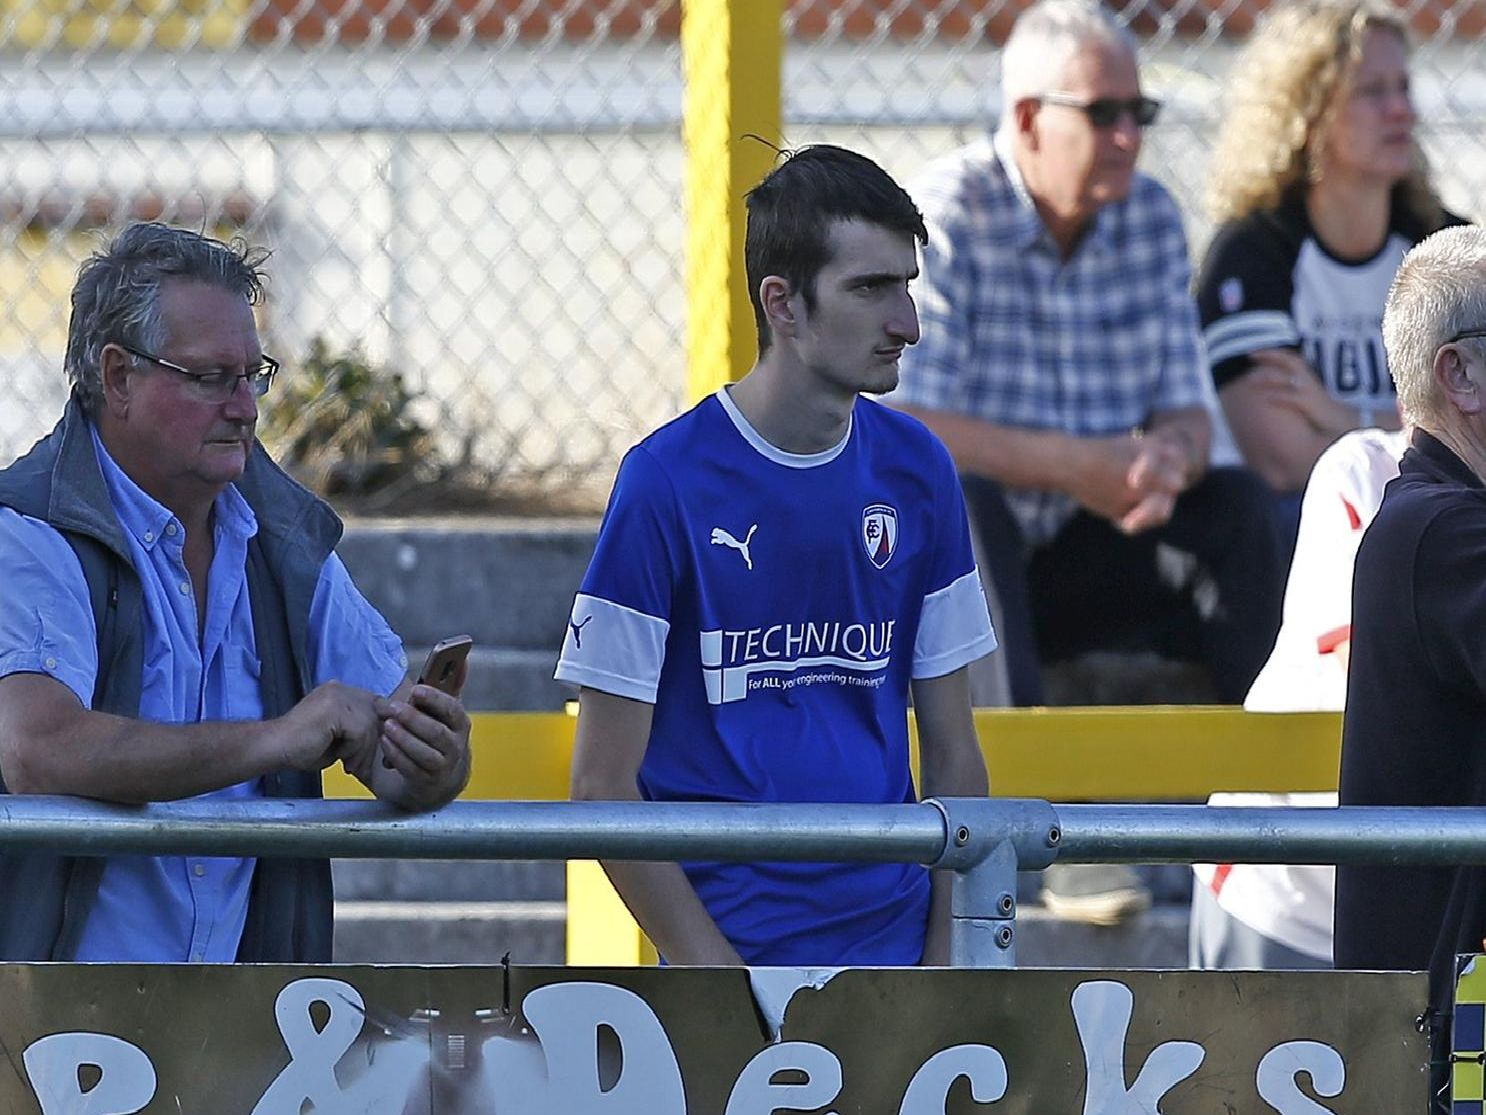 Glum faces as Chesterfield fans take in their 4-0 beating at Sutton United.